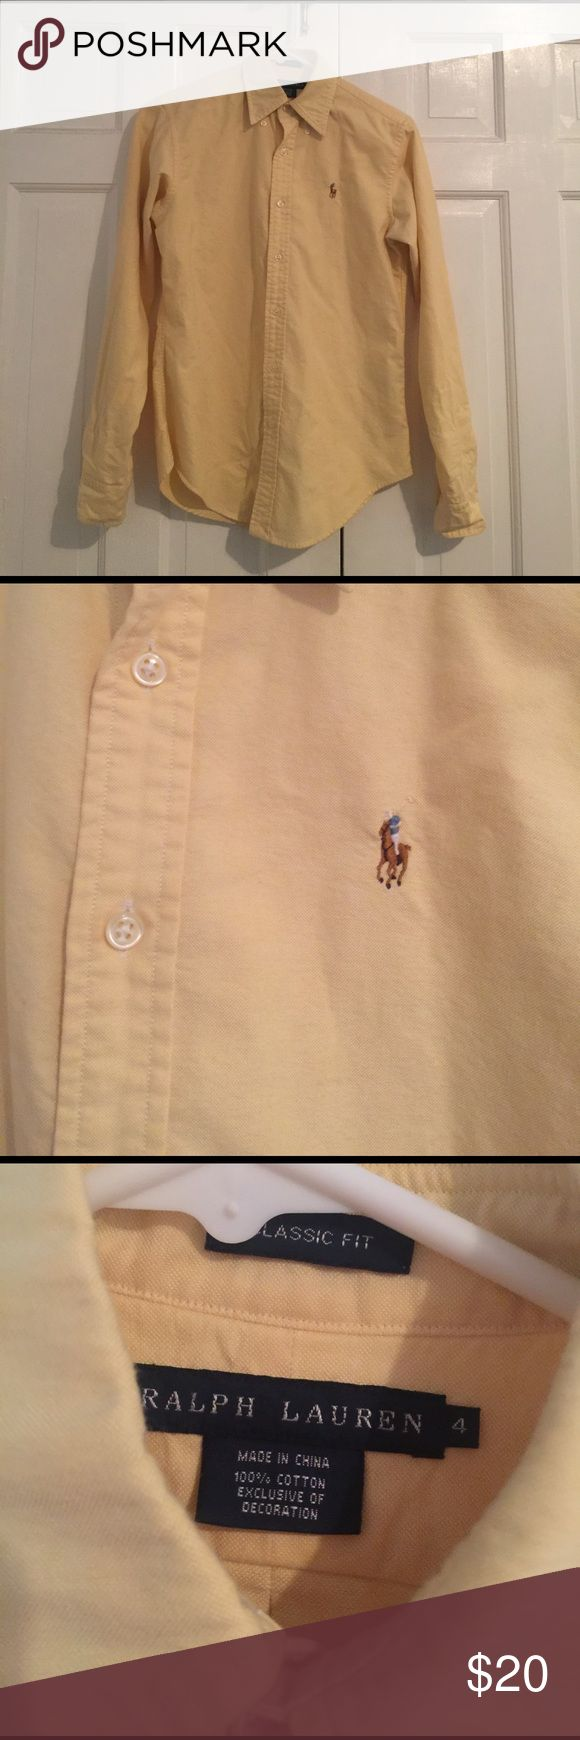 Ralph Lauren oxford - size 4 - yellow Classic Fit Ralph Lauren Classic Fit button-down oxford shirt. Women's. Size 4. Yellow. Ralph Lauren Tops Button Down Shirts